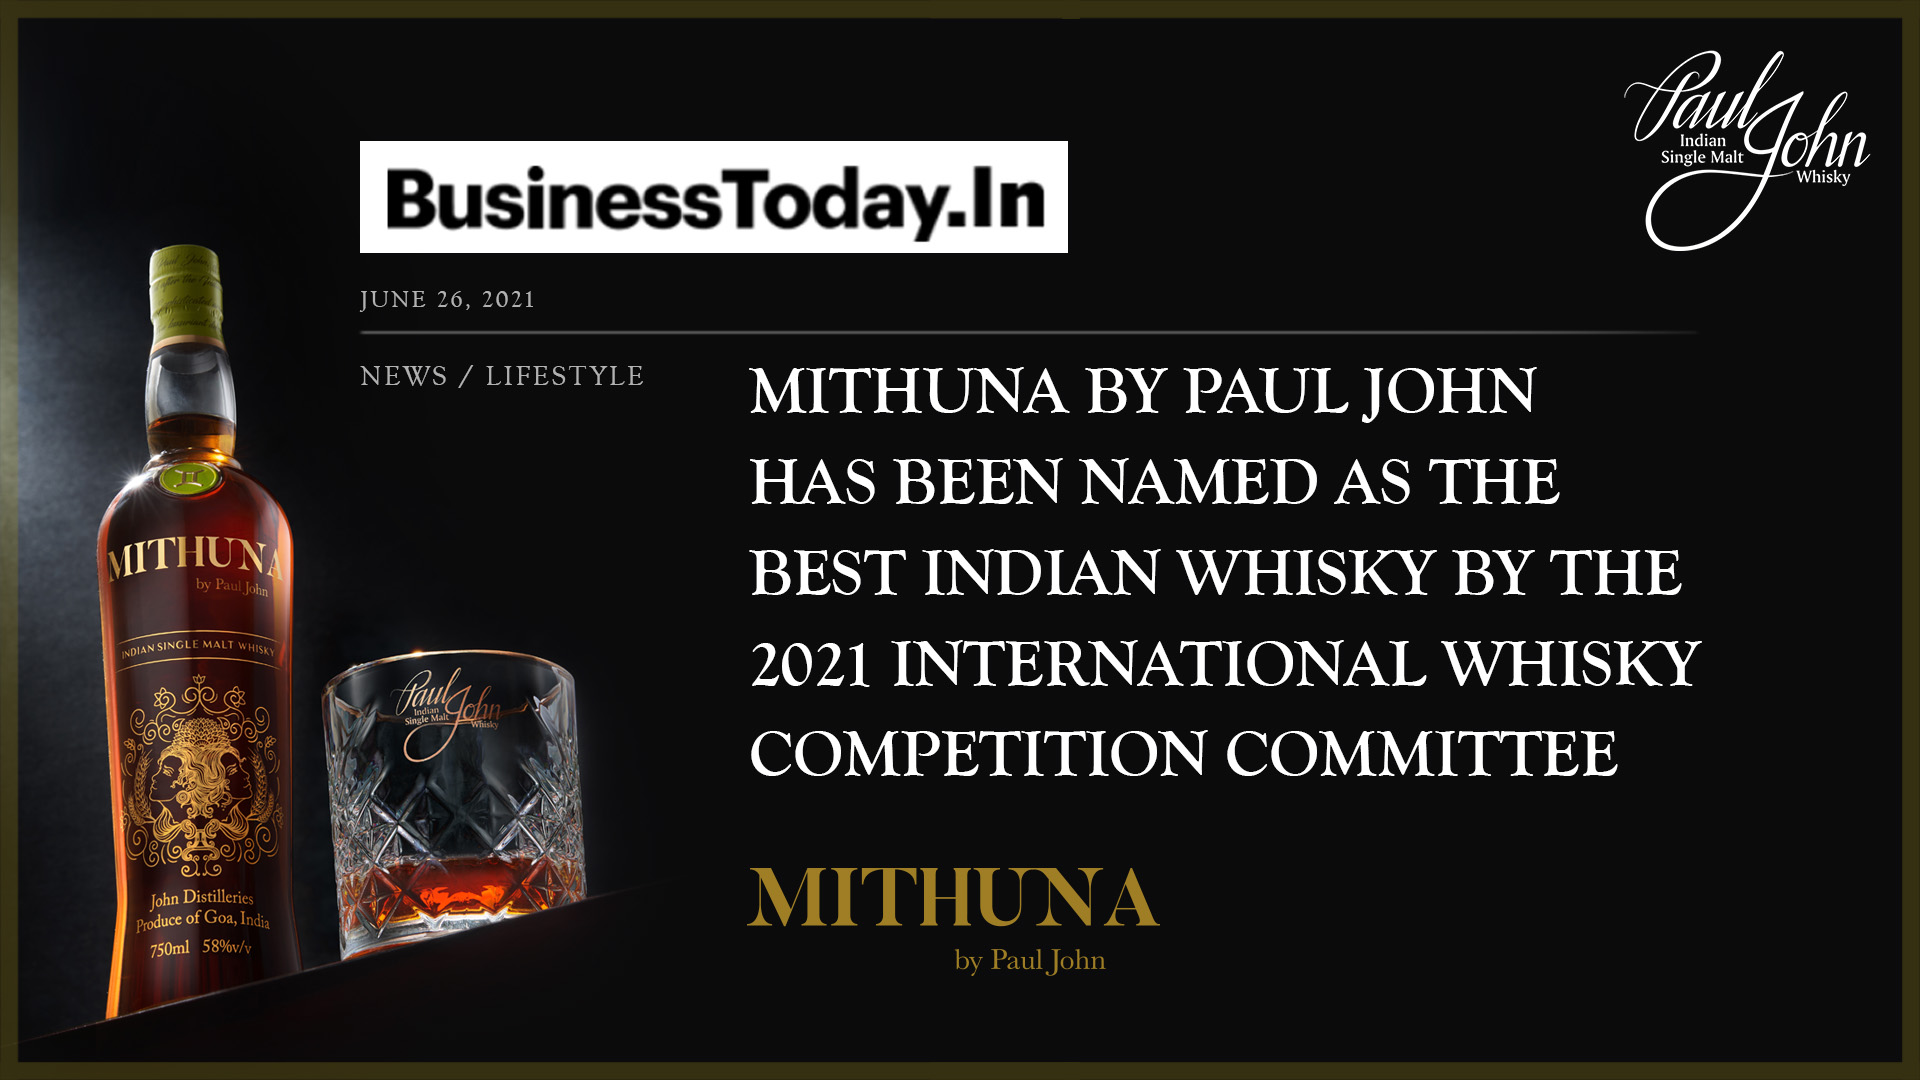 Paul John's Mithuna best Indian whisky By BusinessToday.In